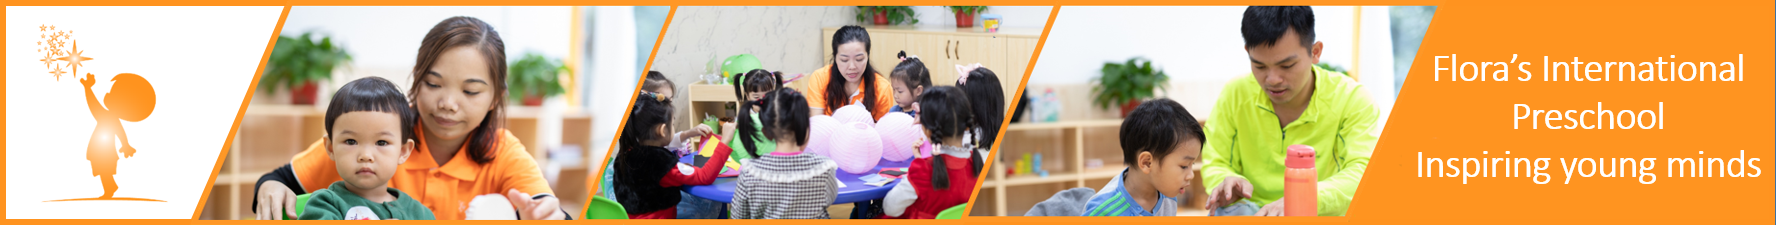 Floras international preschool Haikou Hainan